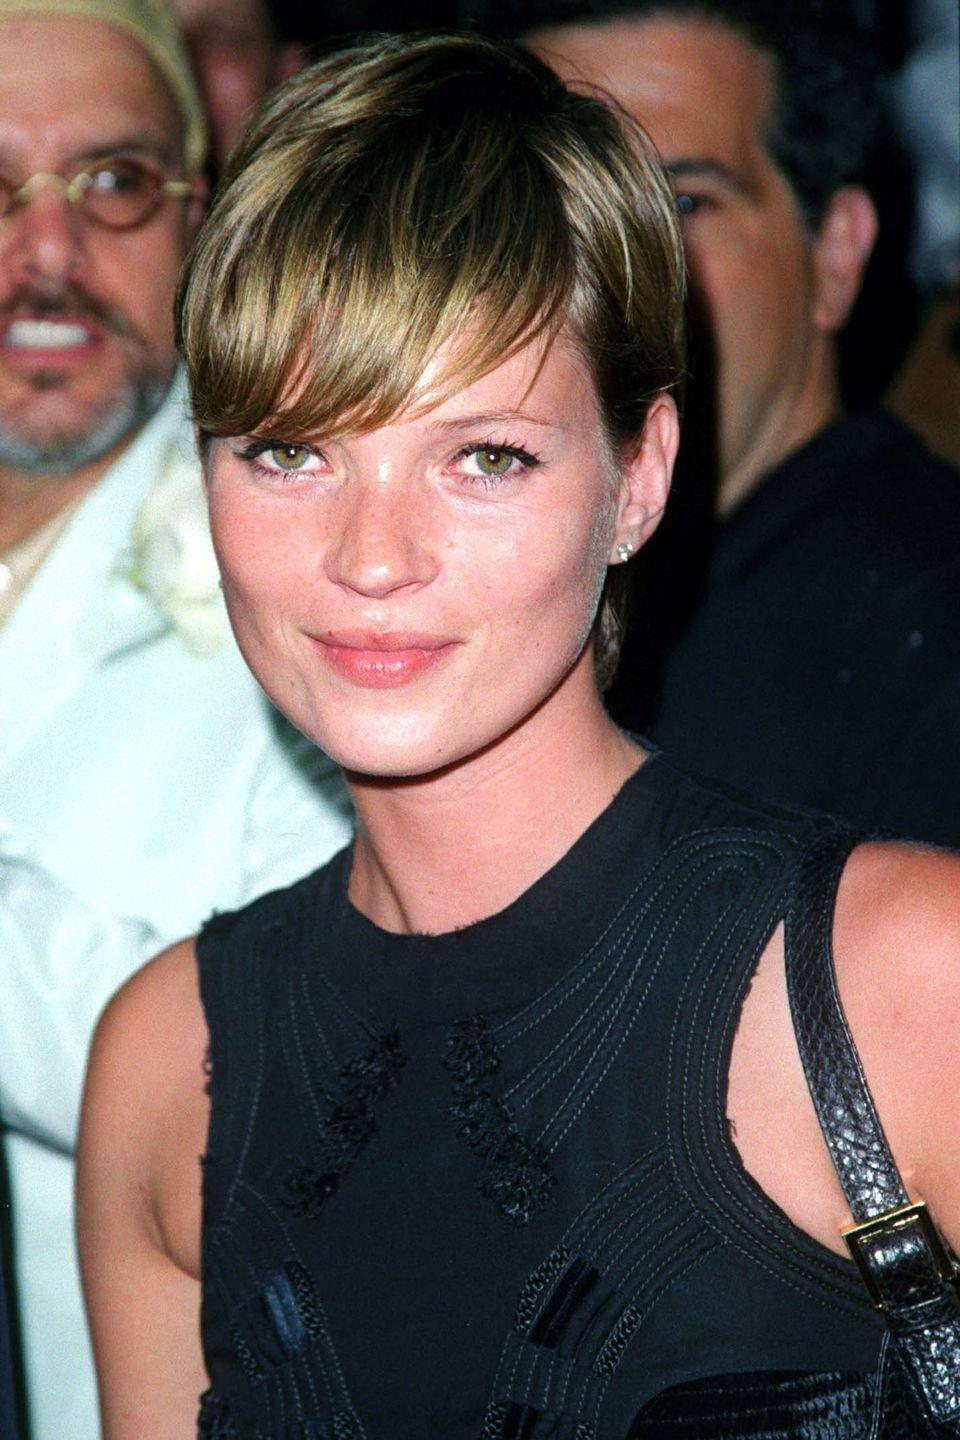 <p>Model Kate Moss plays with feathery fringe bangs.</p>